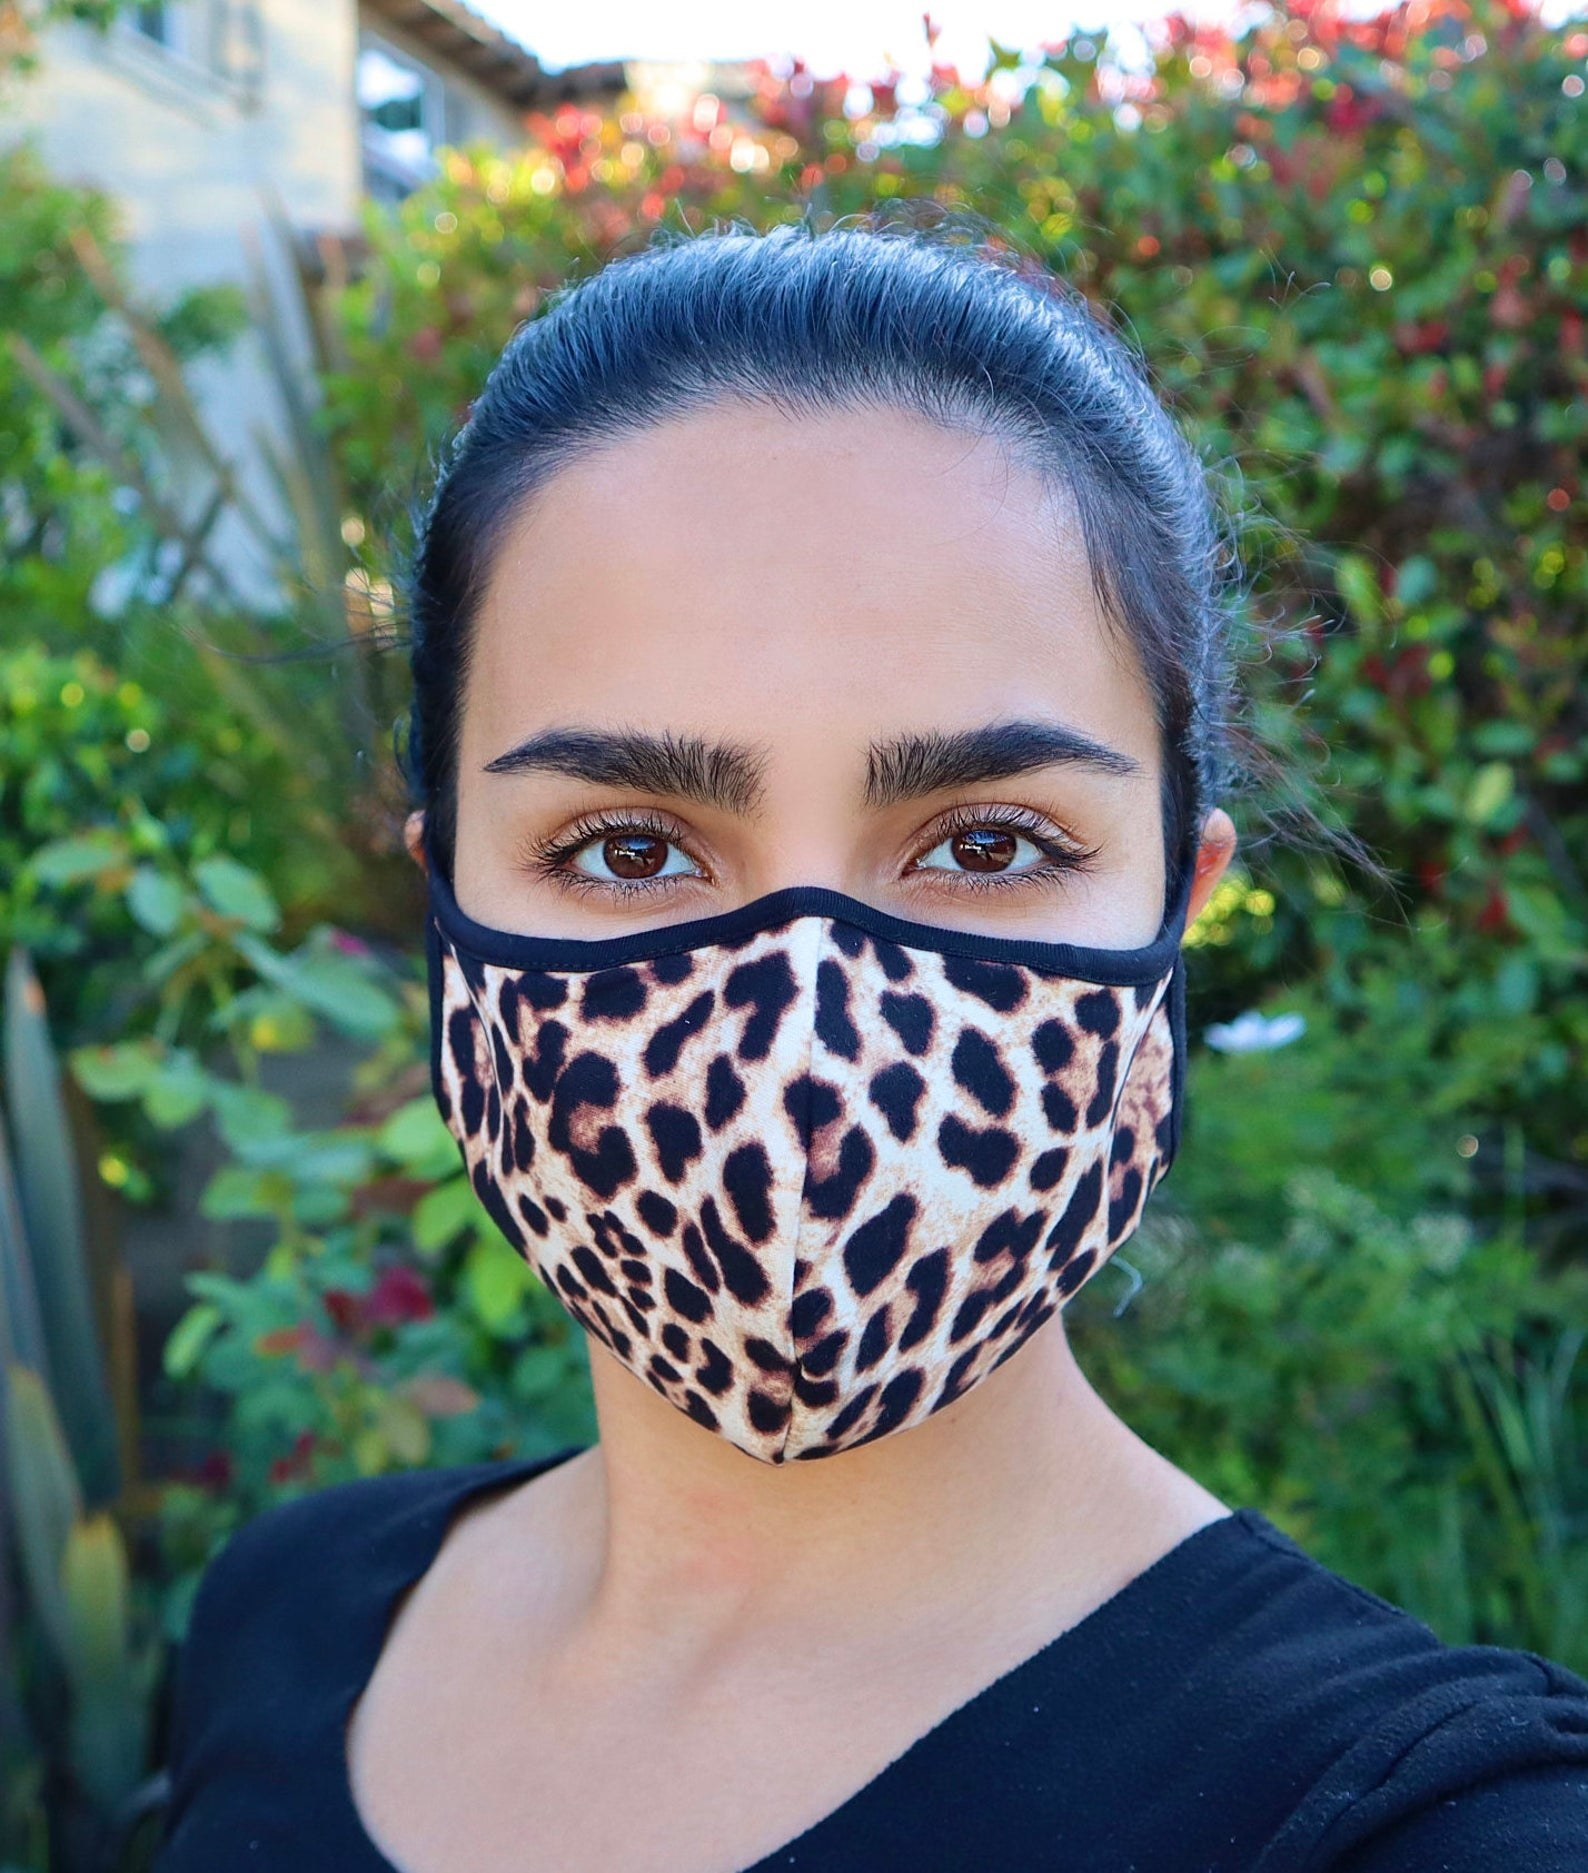 Model wearing a face mask